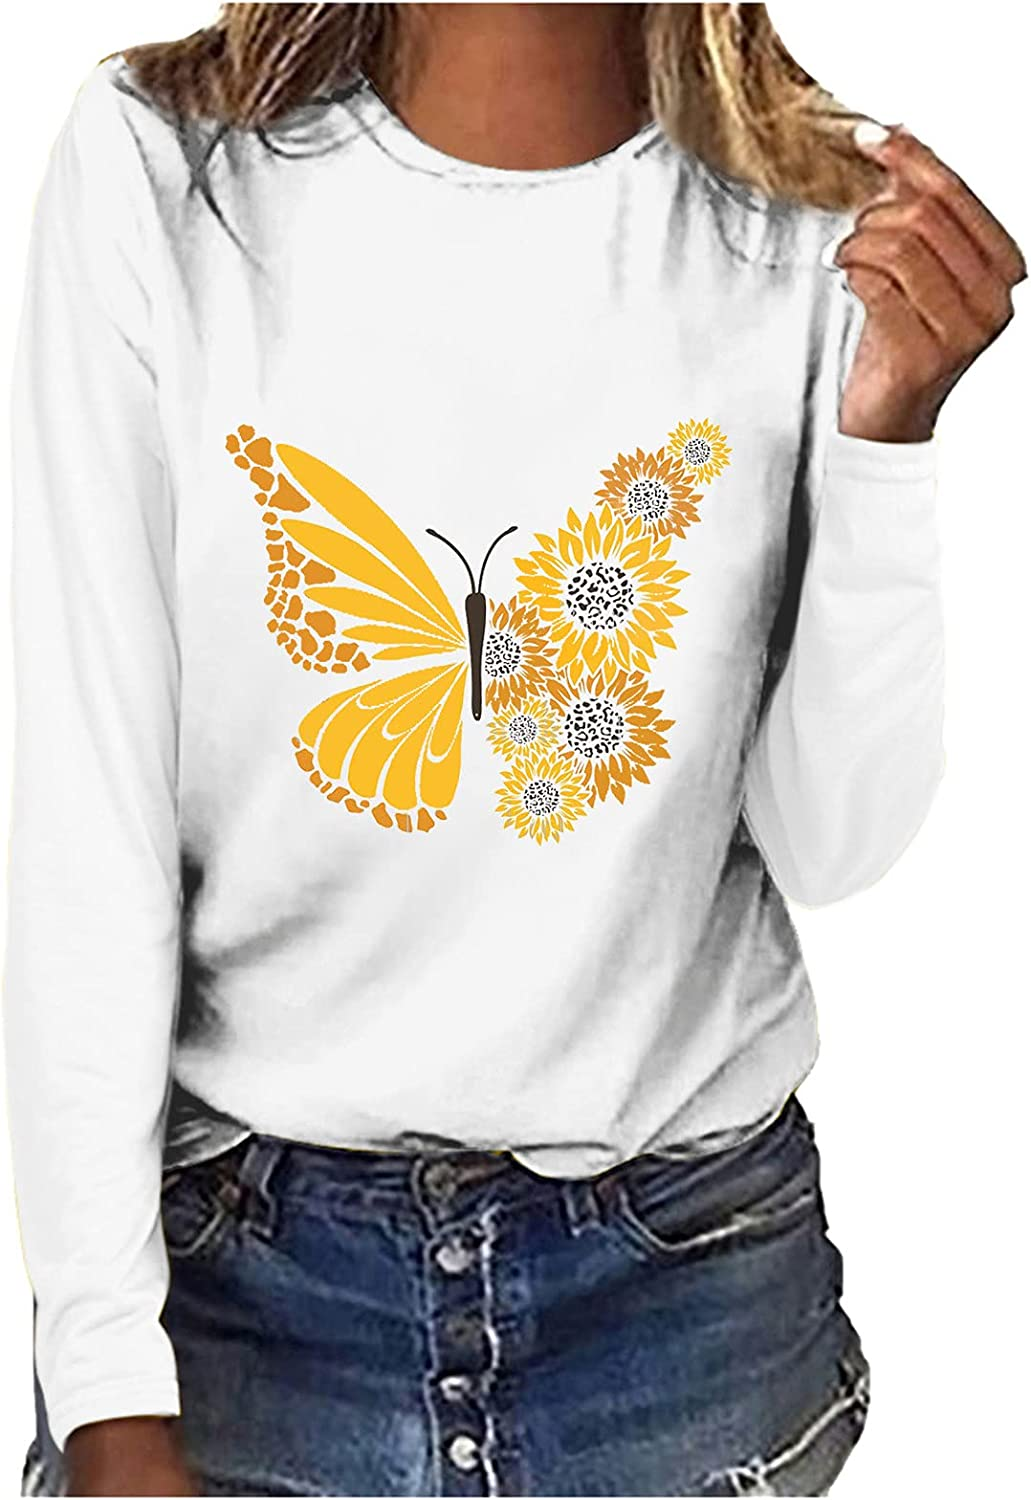 Shirts for Womens Autumn Long Sleeve Sunflower Print Tunics Casual Round Neck Pullovers Tops Winter Basic Blouse Tees